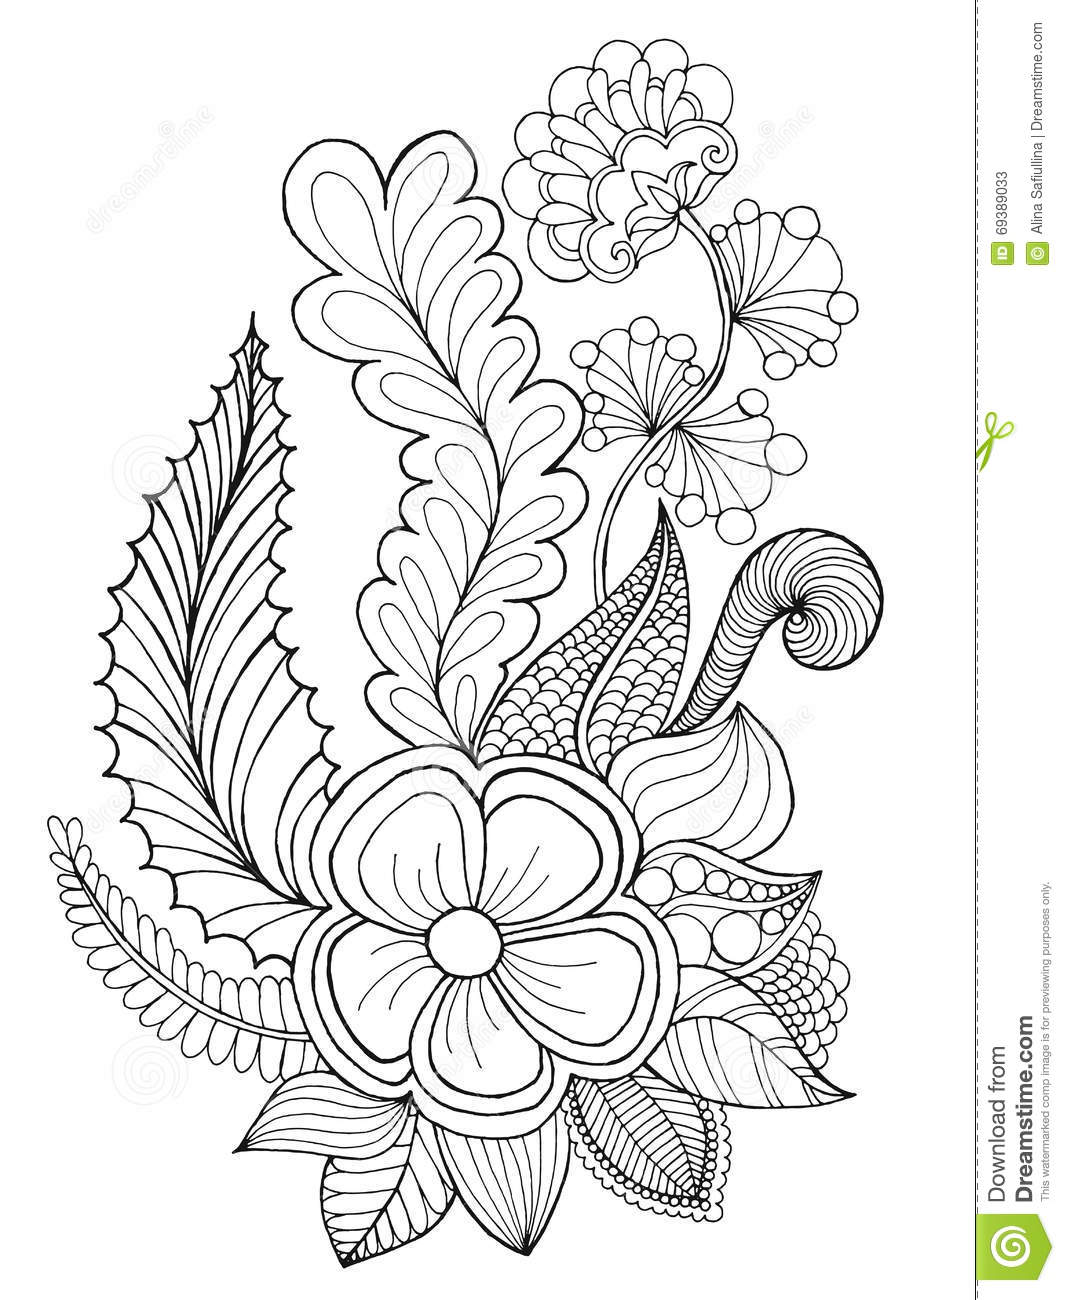 fantasy flowers coloring page stock vector image 69389033 vector shoes silhouettes vector shoes box